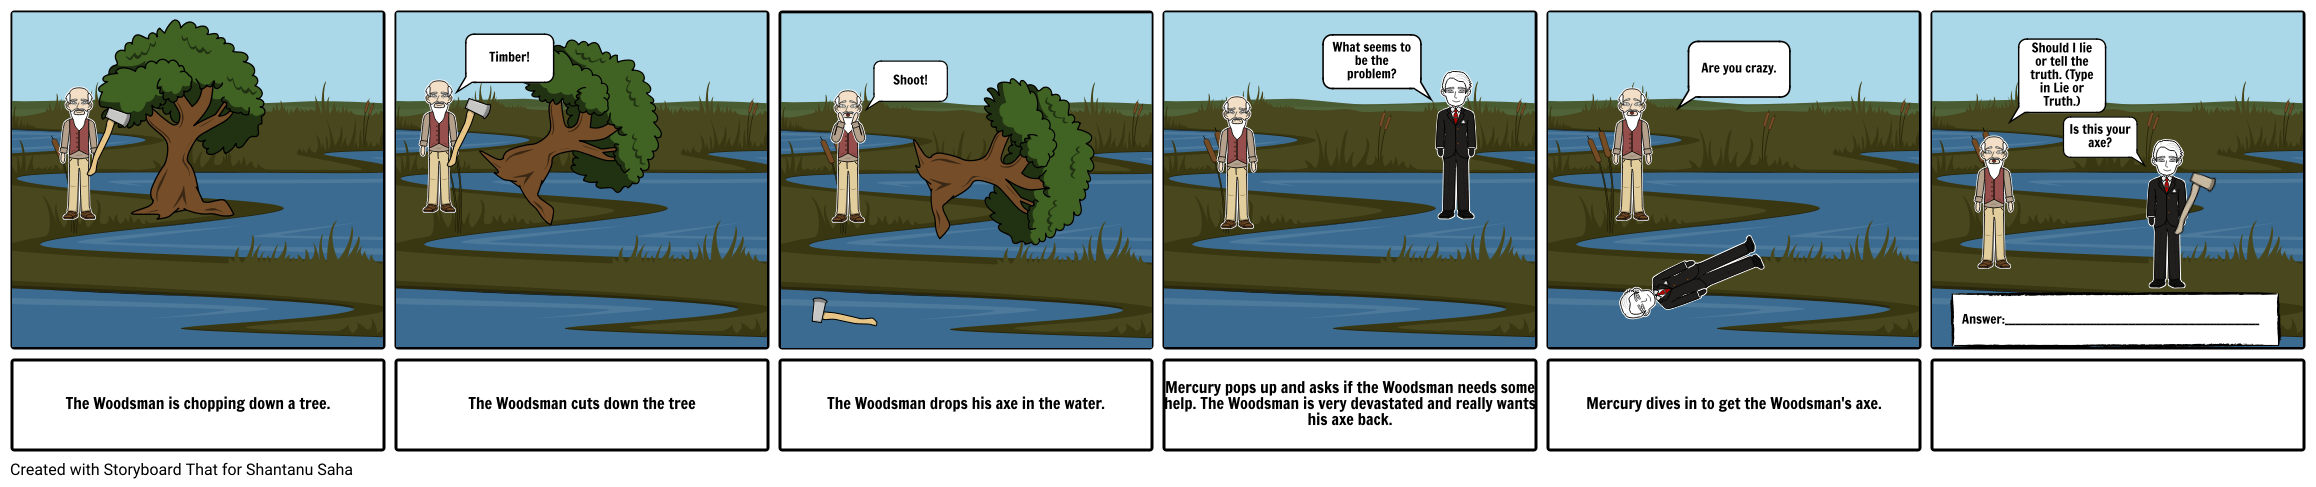 Mercury and the Woodsman Act 1